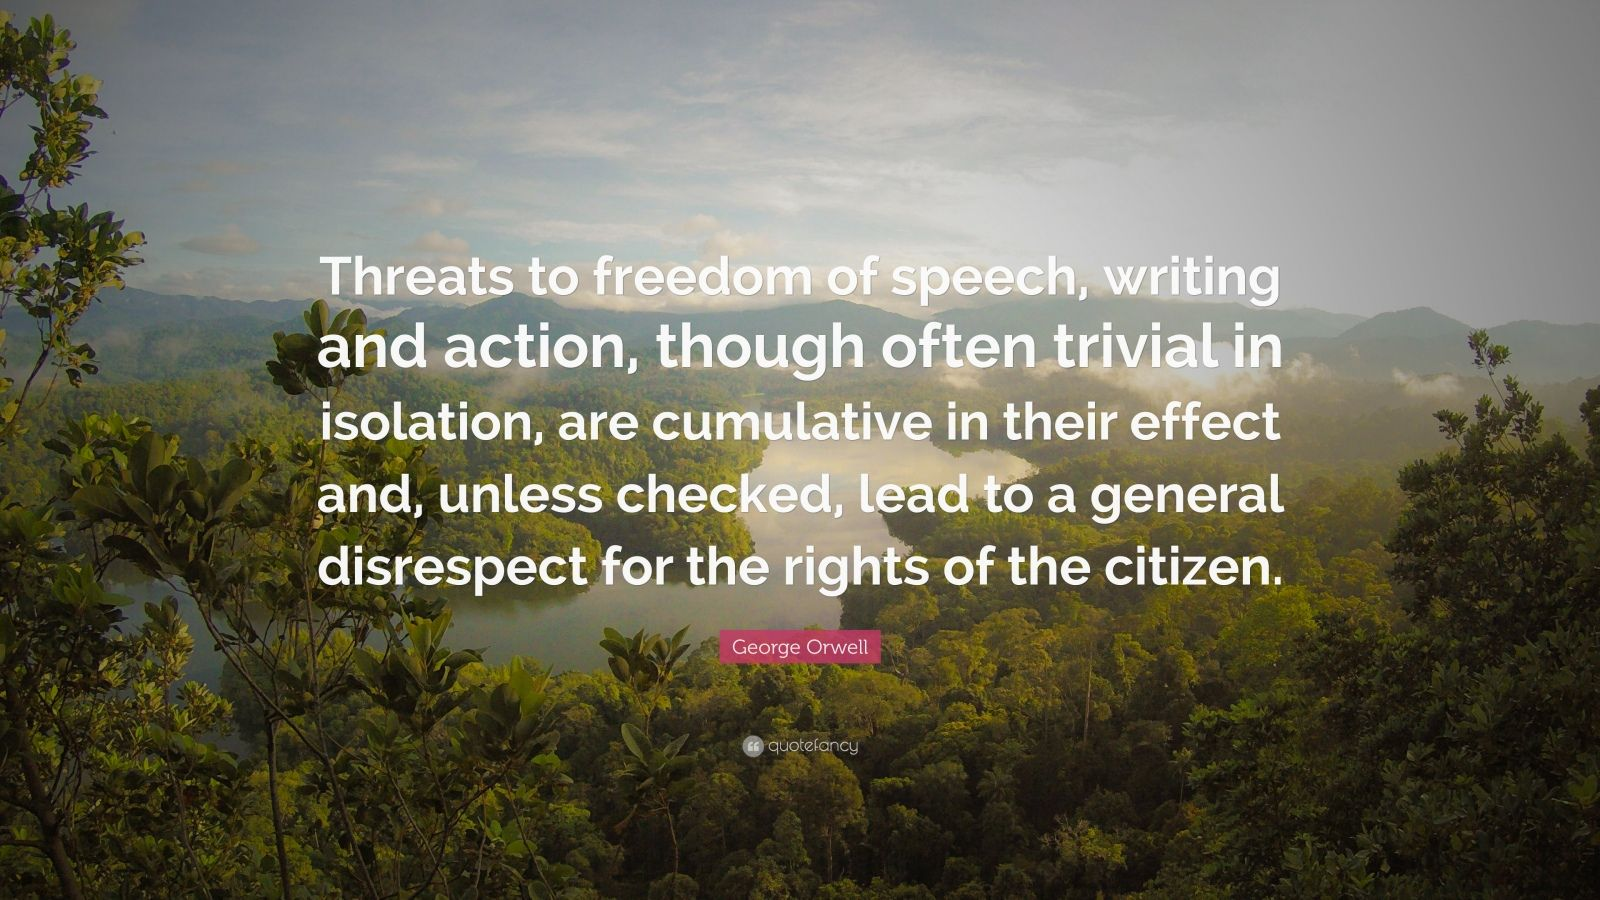 """George Orwell Quote: """"Threats to freedom of speech, writing and action, though often trivial in isolation, are cumulative in their effect and, unless checked, lead to a general disrespect for the rights of the citizen."""""""